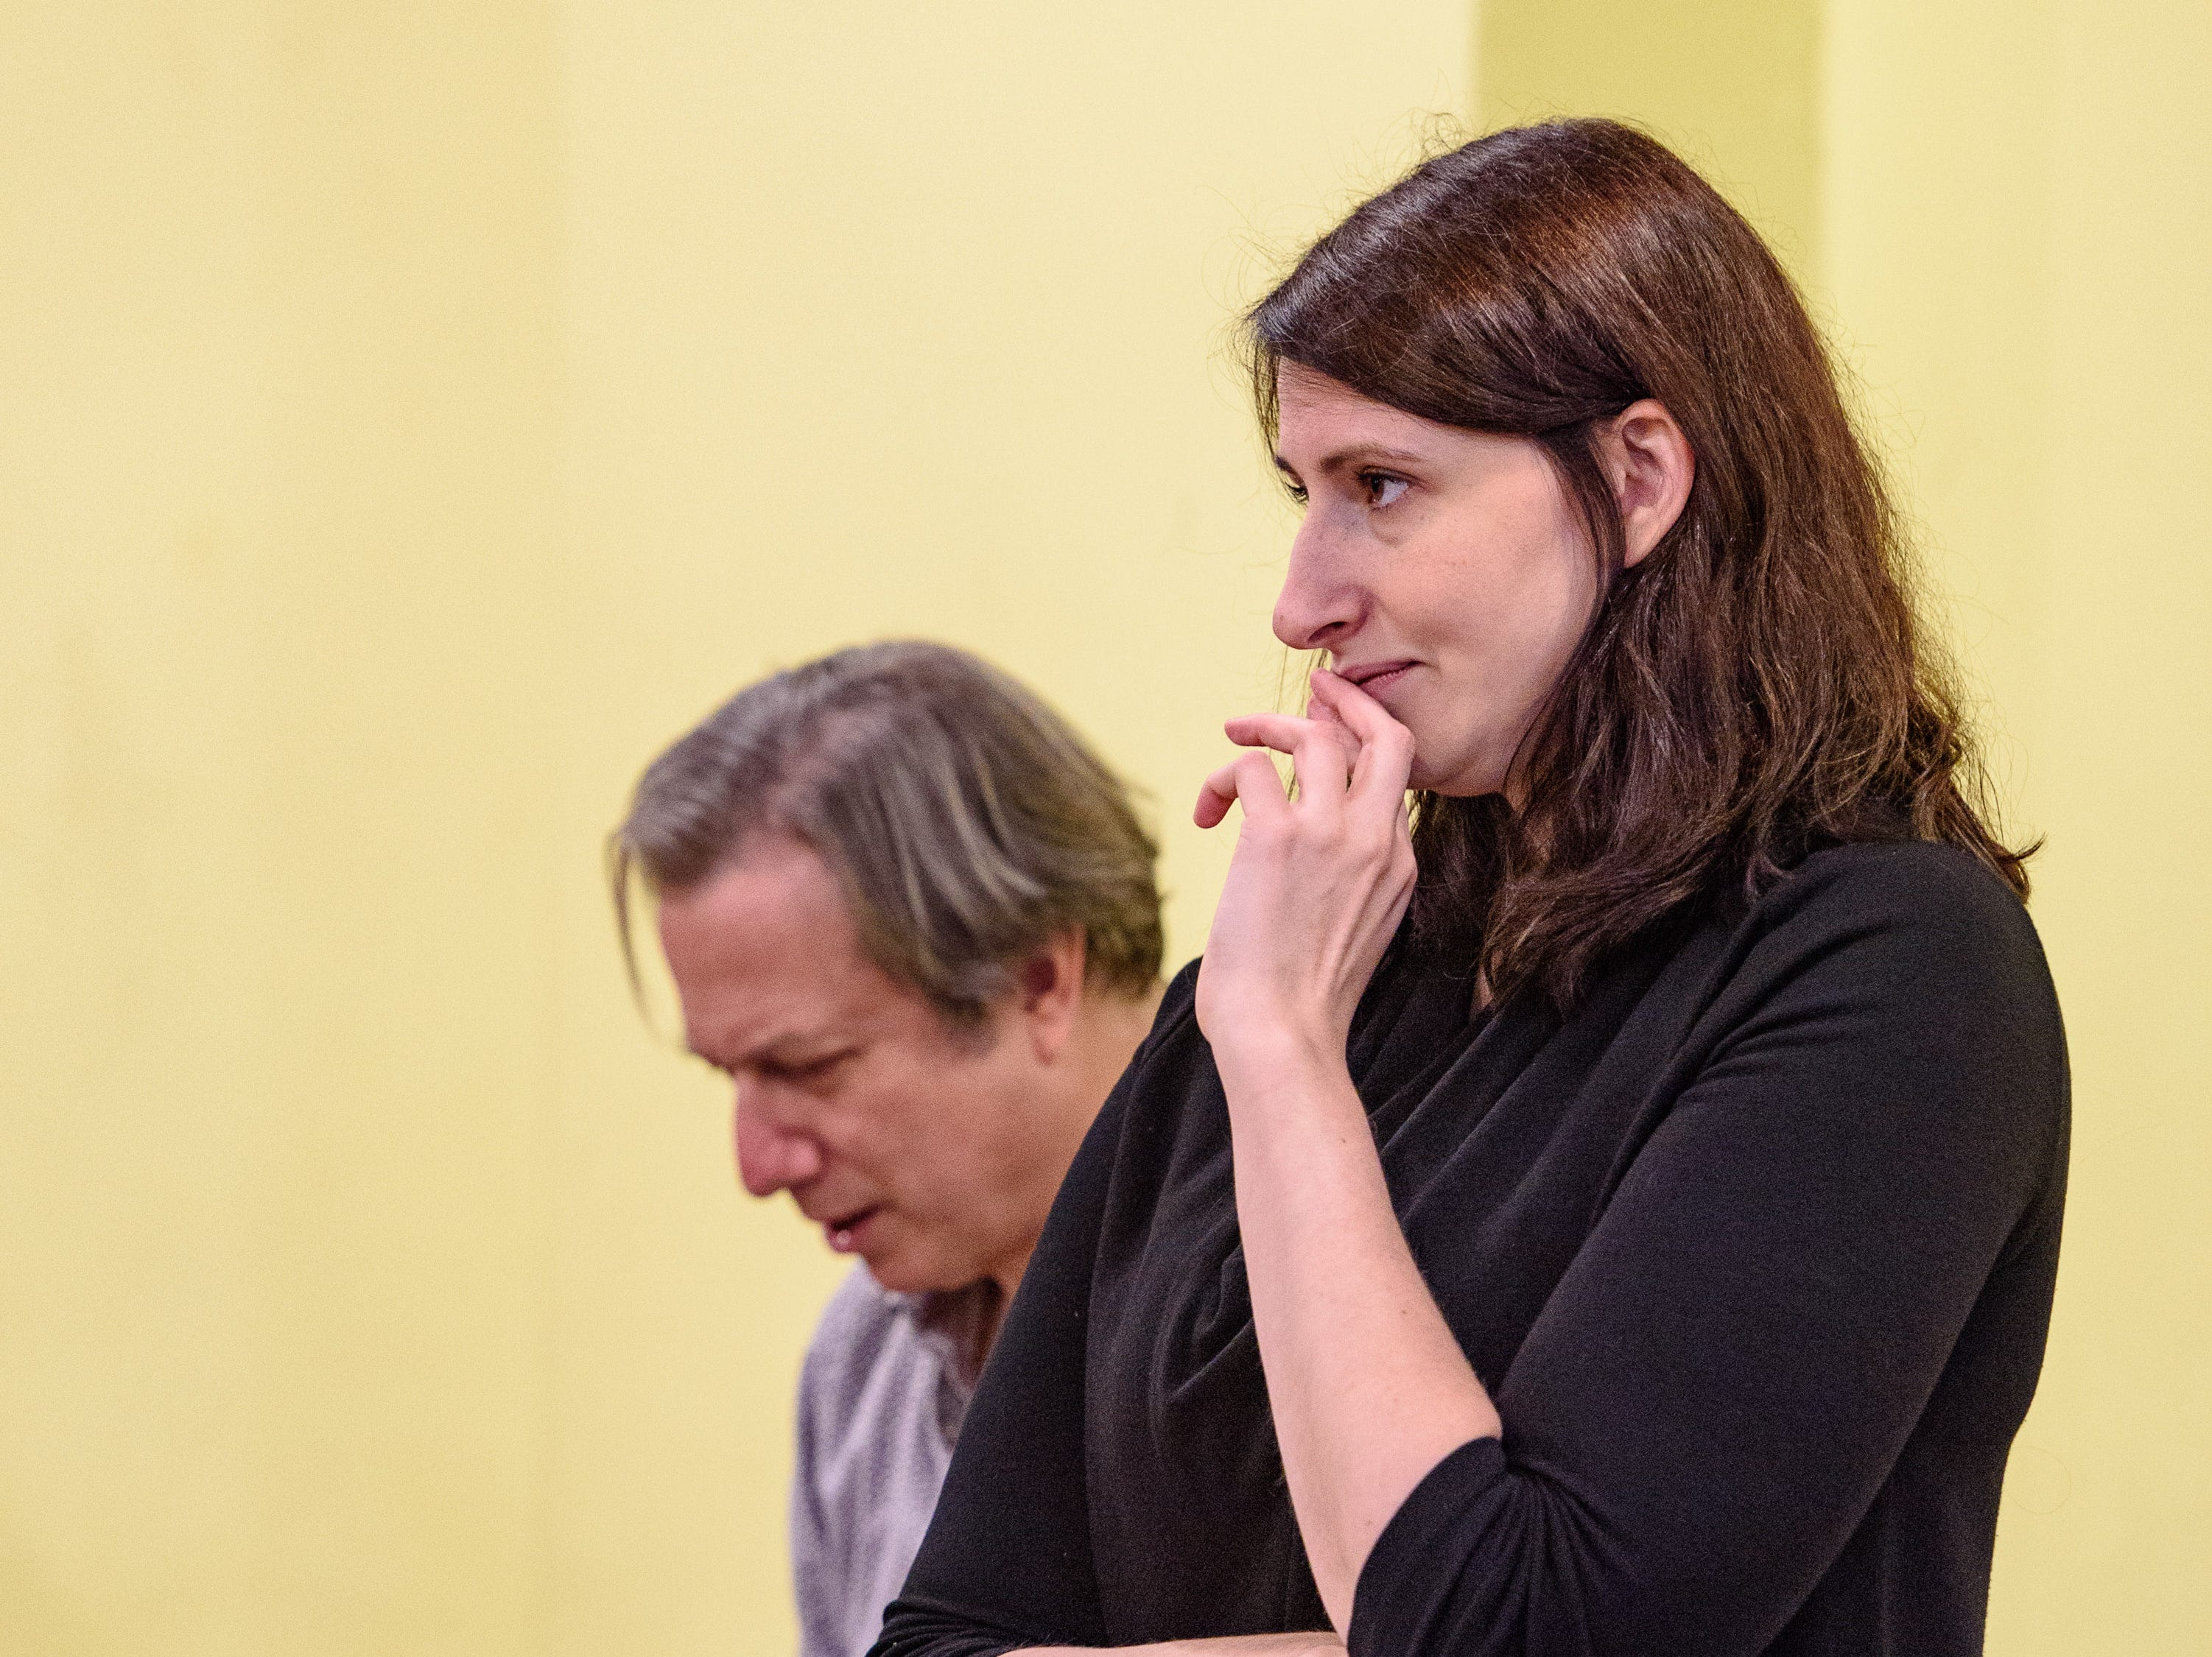 Conductor David Stern, left, and Stage Director Mary Birnbaum watch as Kentucky Opera works on their production of ÒEnemies, A Love Story,Ó in their rehearsal space at the Brown Theater. Oct. 27, 2018